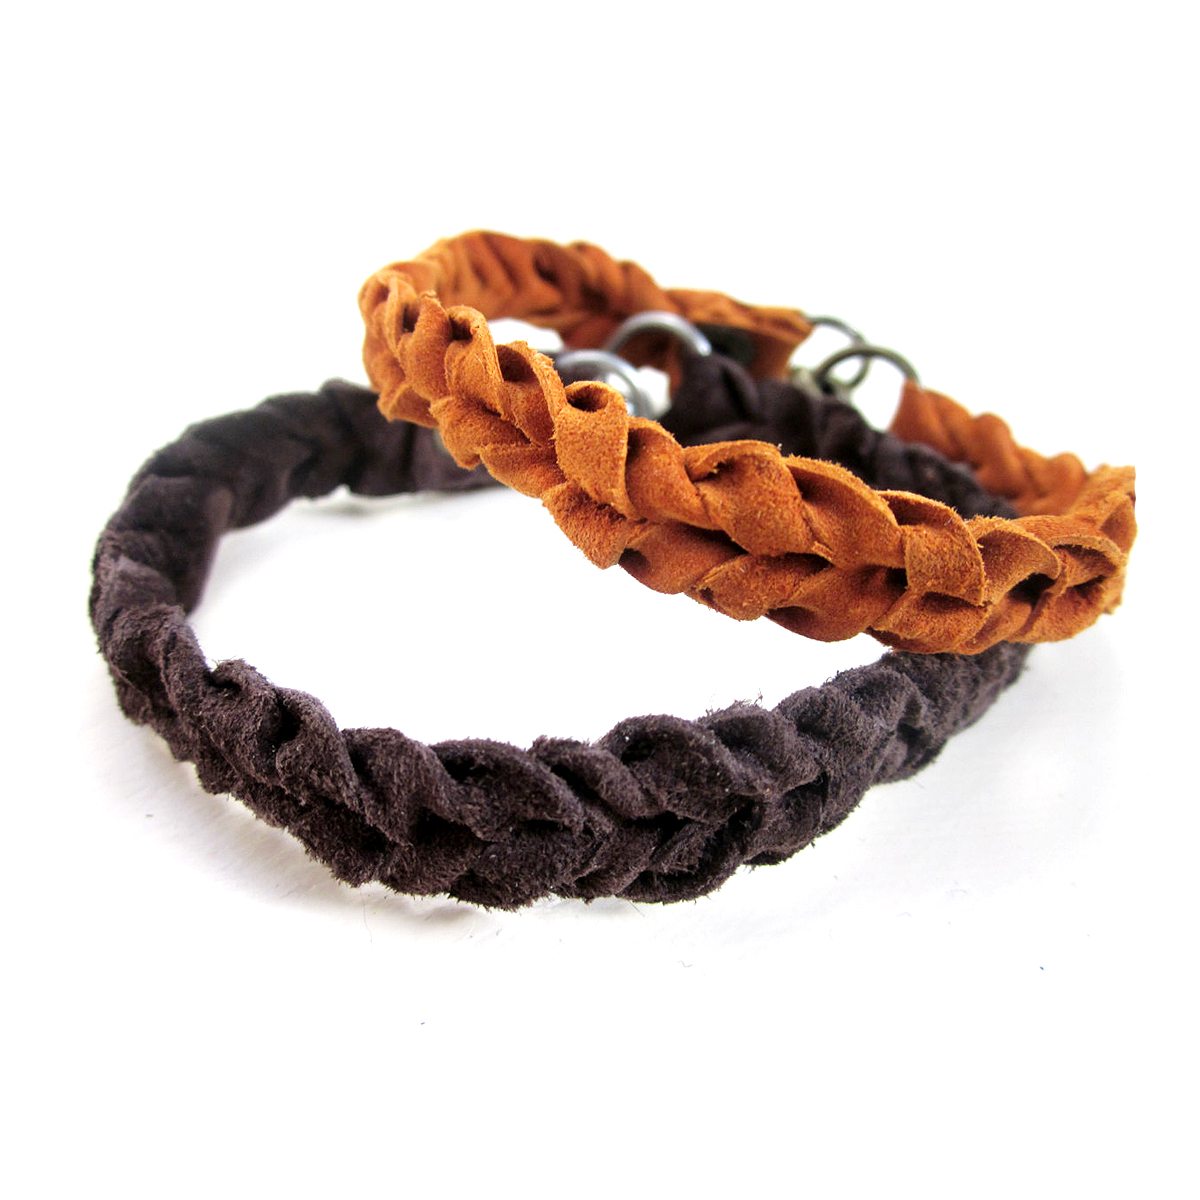 knotted-bohemian-leather-bracelet-the-leather-smithy_1